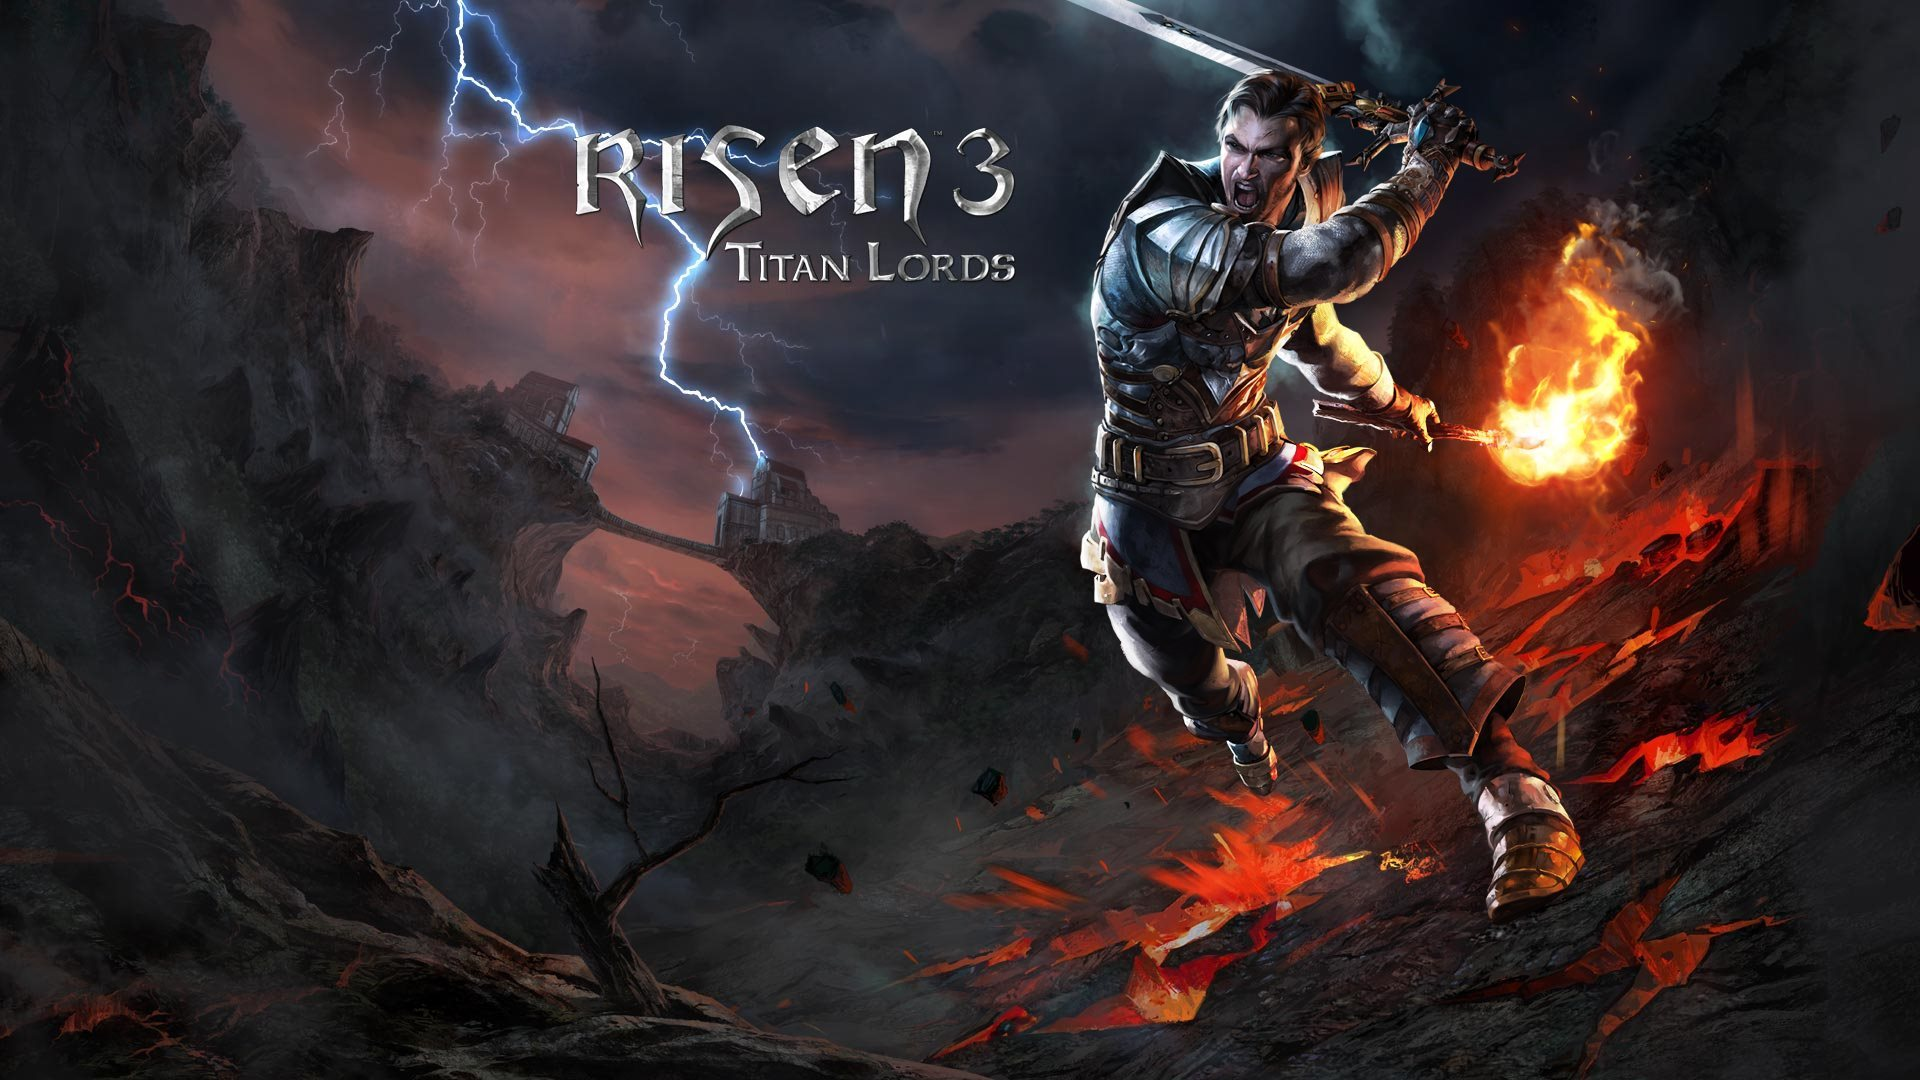 Risen 3: Titan Lords telecharger gratuit de PC et Torrent